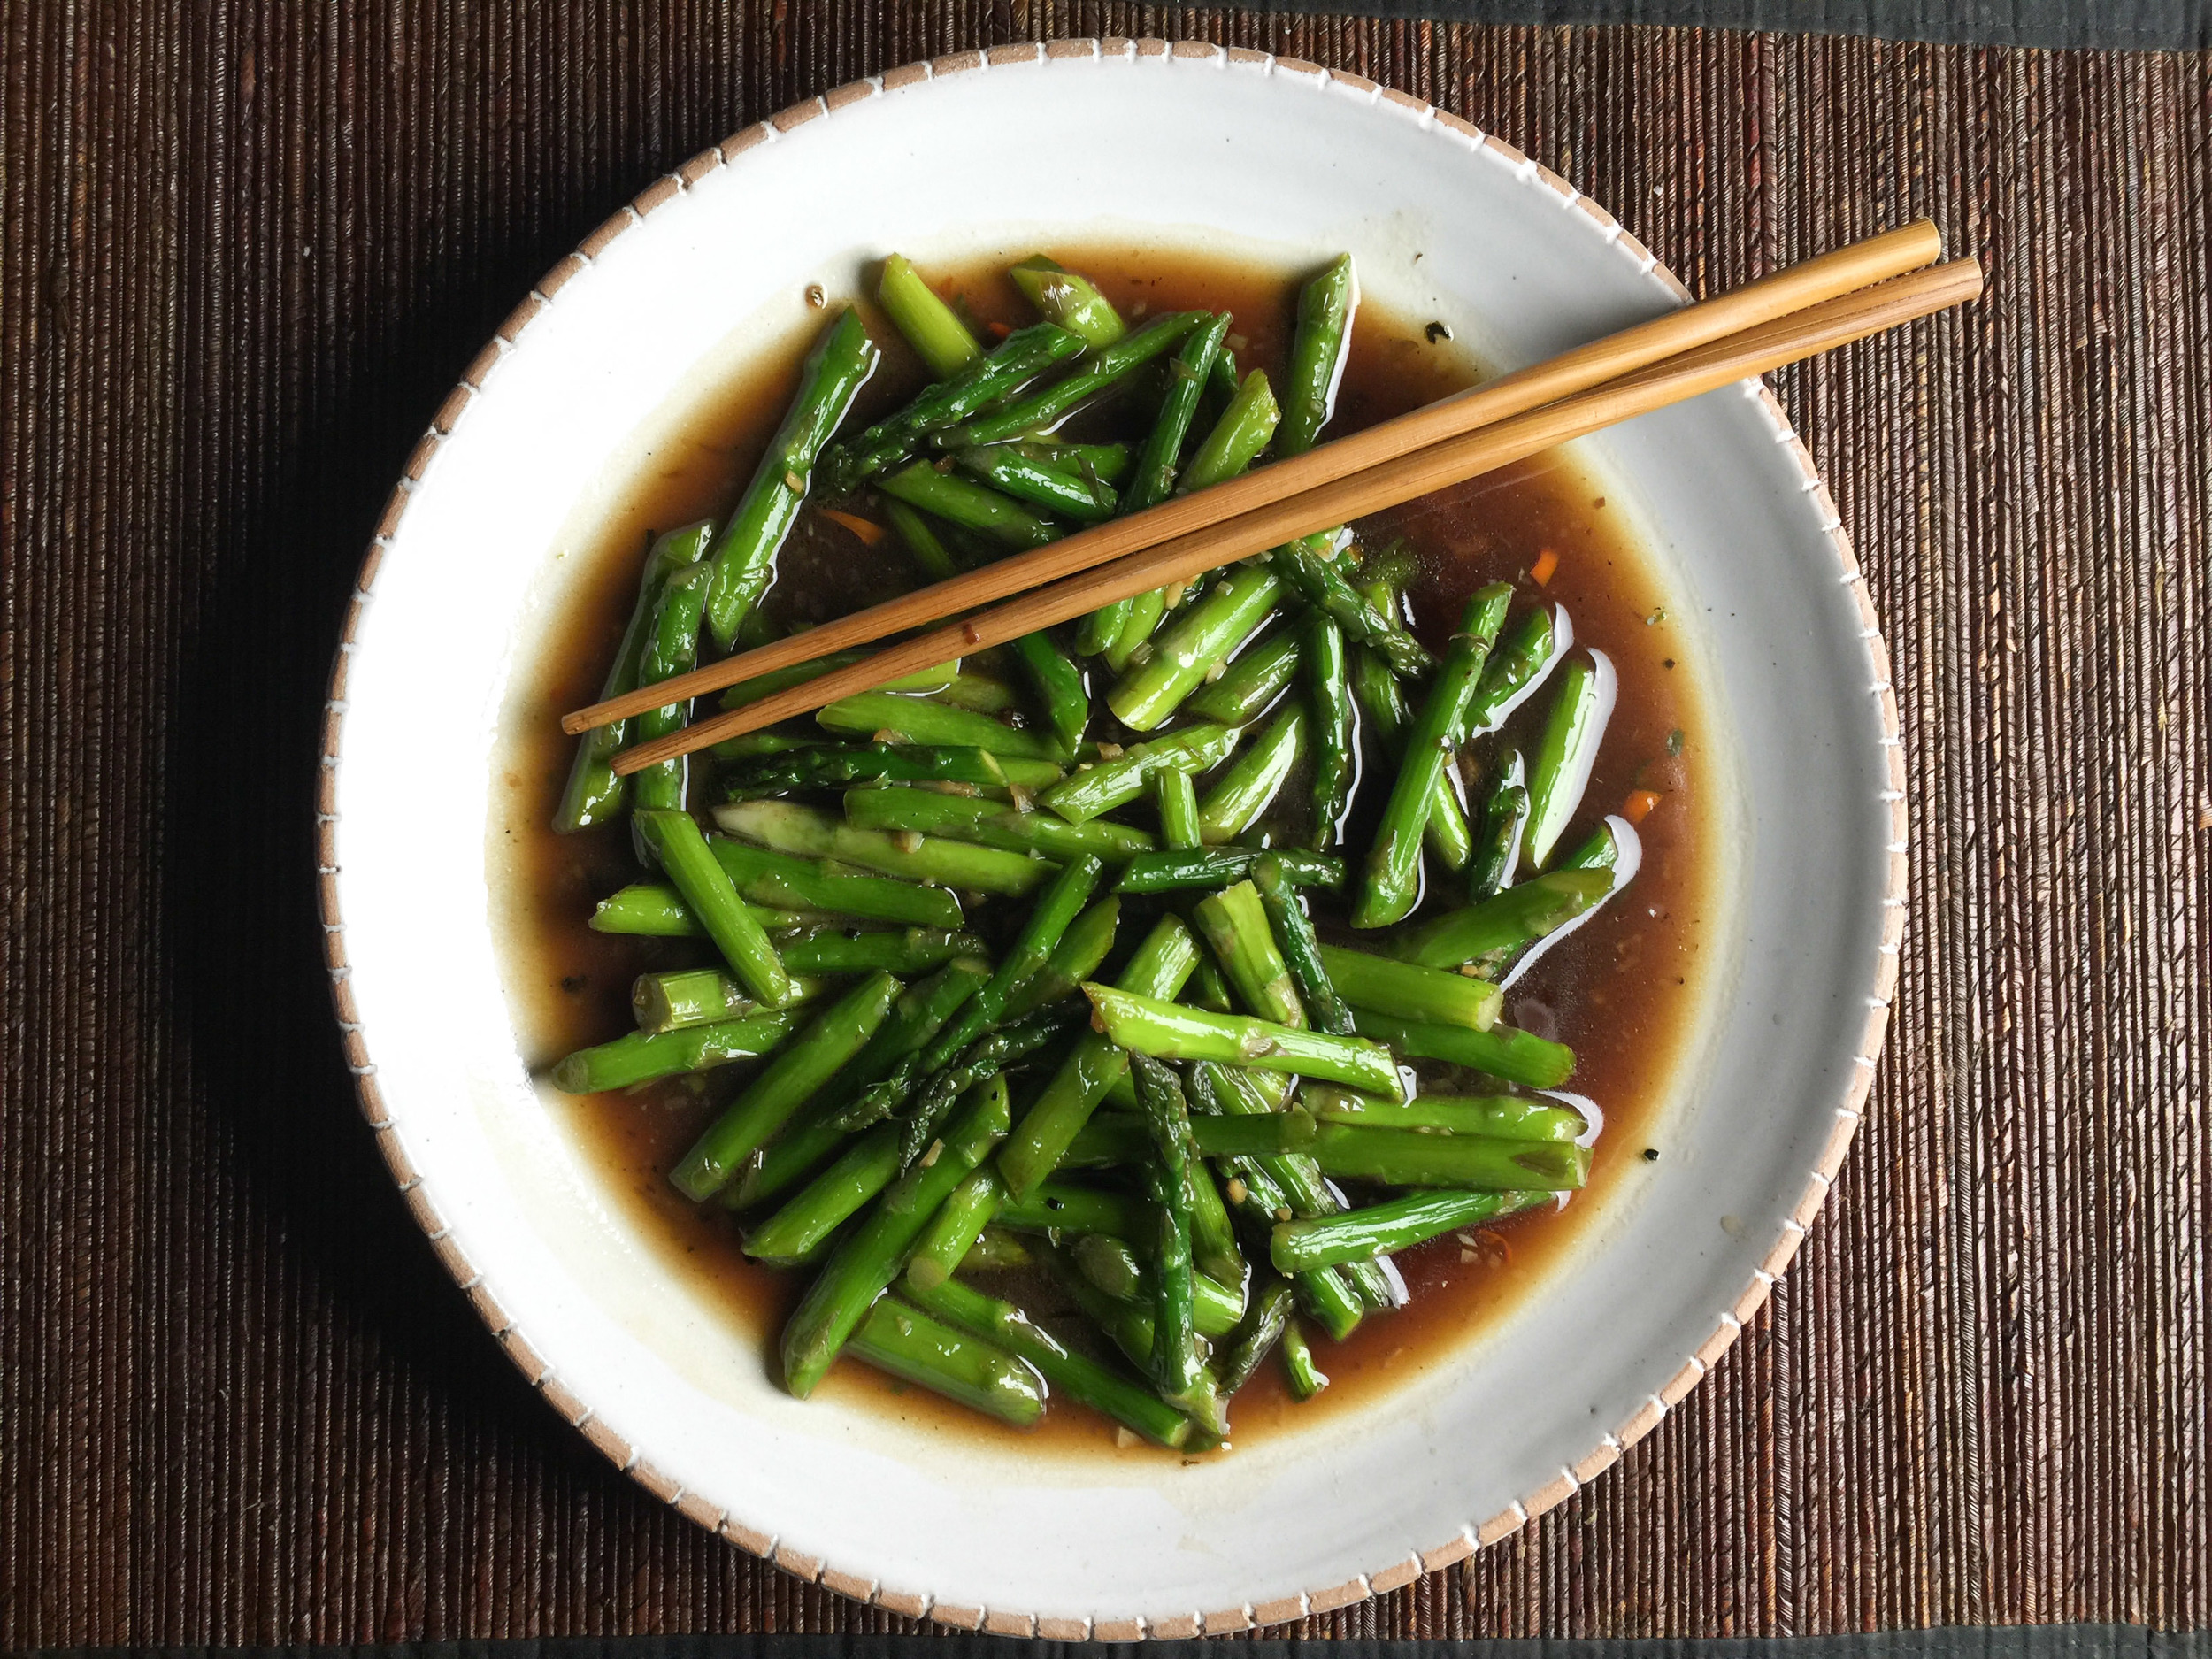 Lucky Peach's stir-fried asparagus